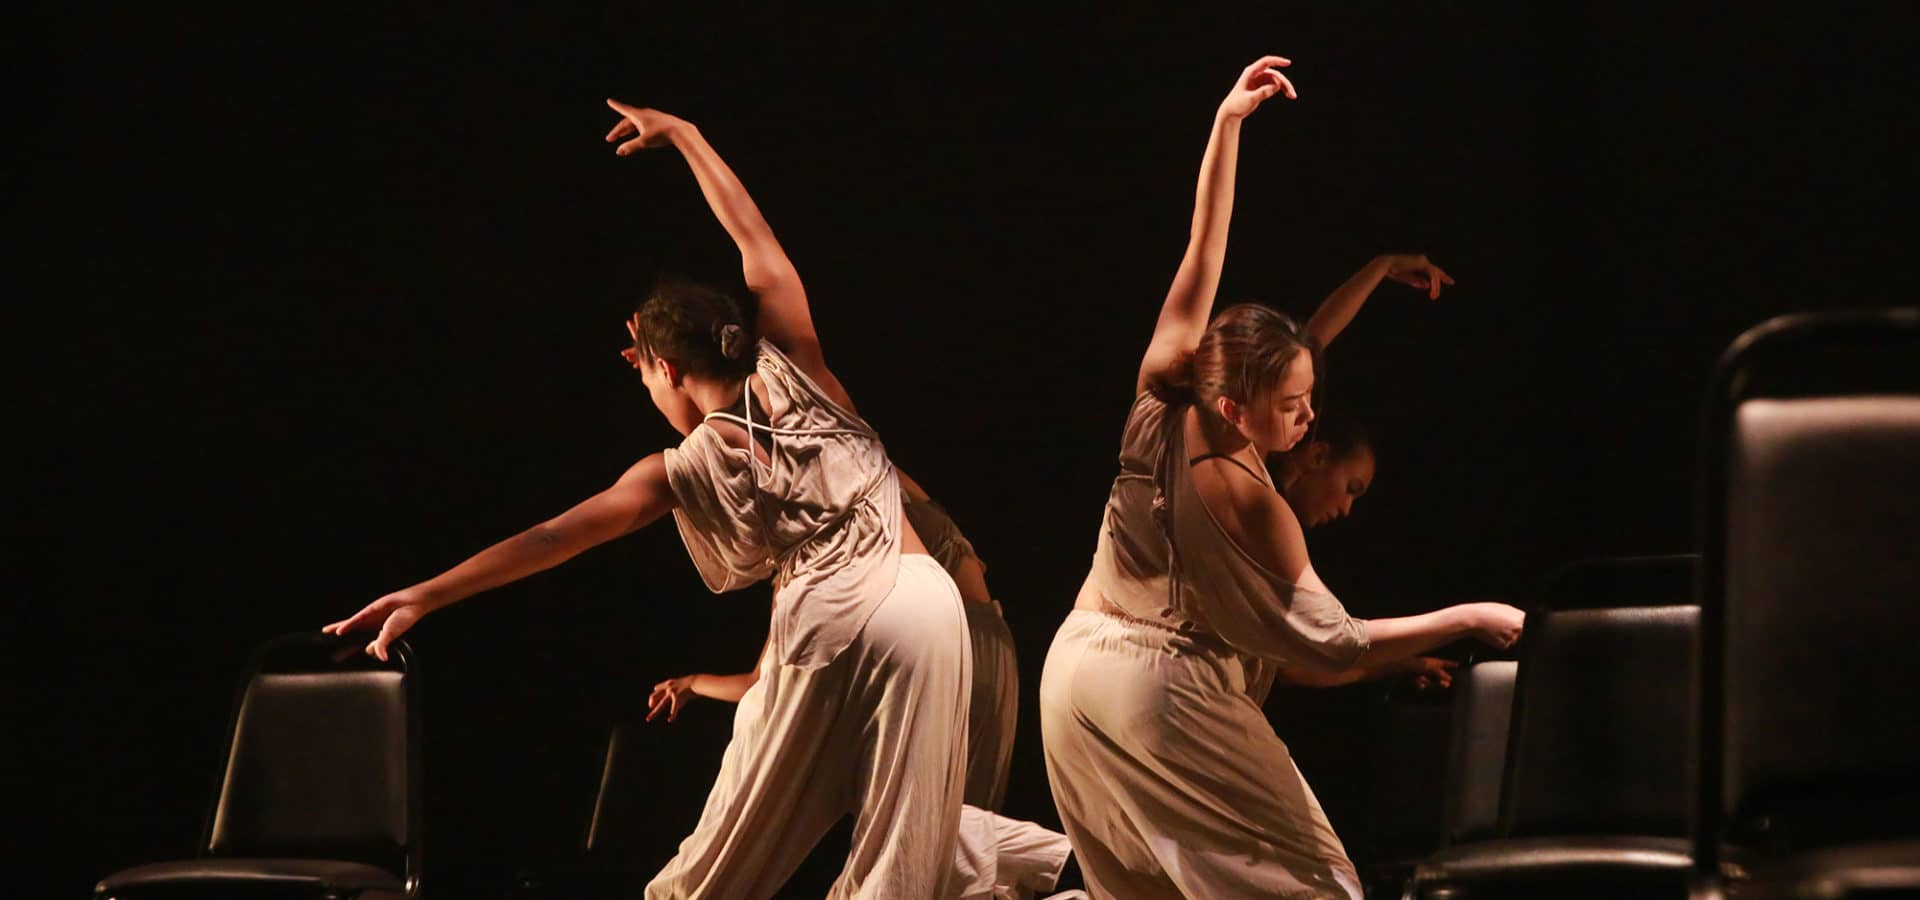 CalArts Sharon Disney Lund School of Dance - Open House Dance Concert 2019